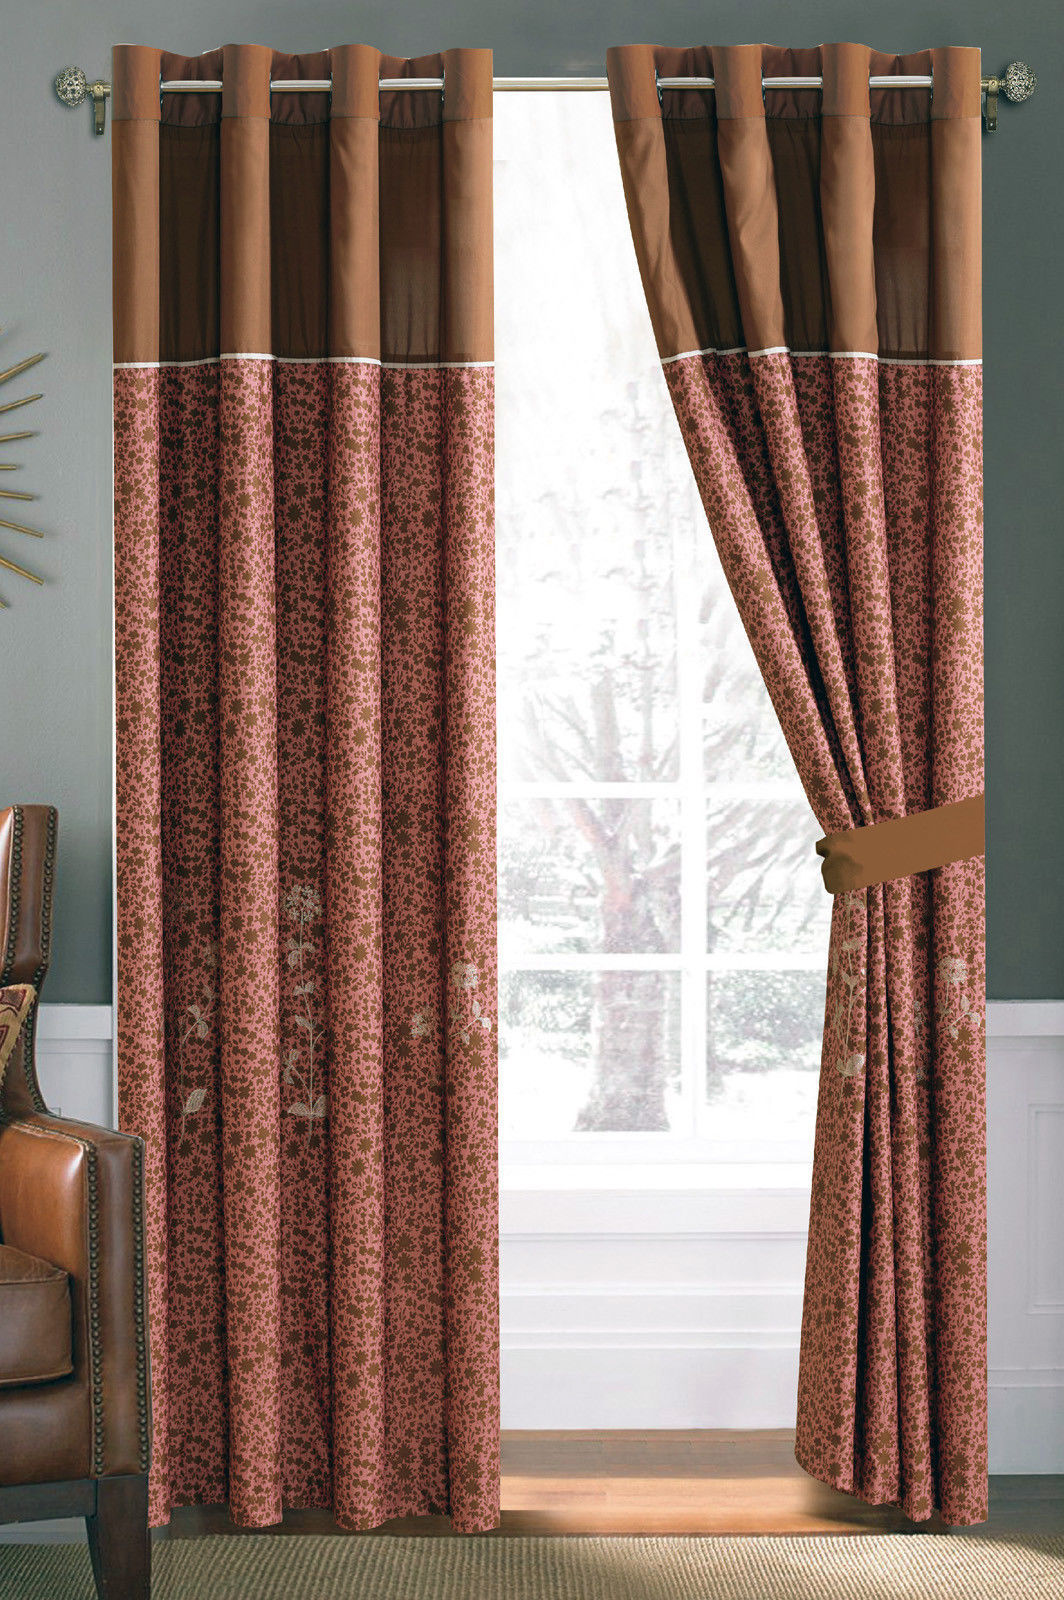 4P Spring Wild Flower Embroidery Curtain Set Brown Coffee Gold Sheer Liner Drape - $40.89